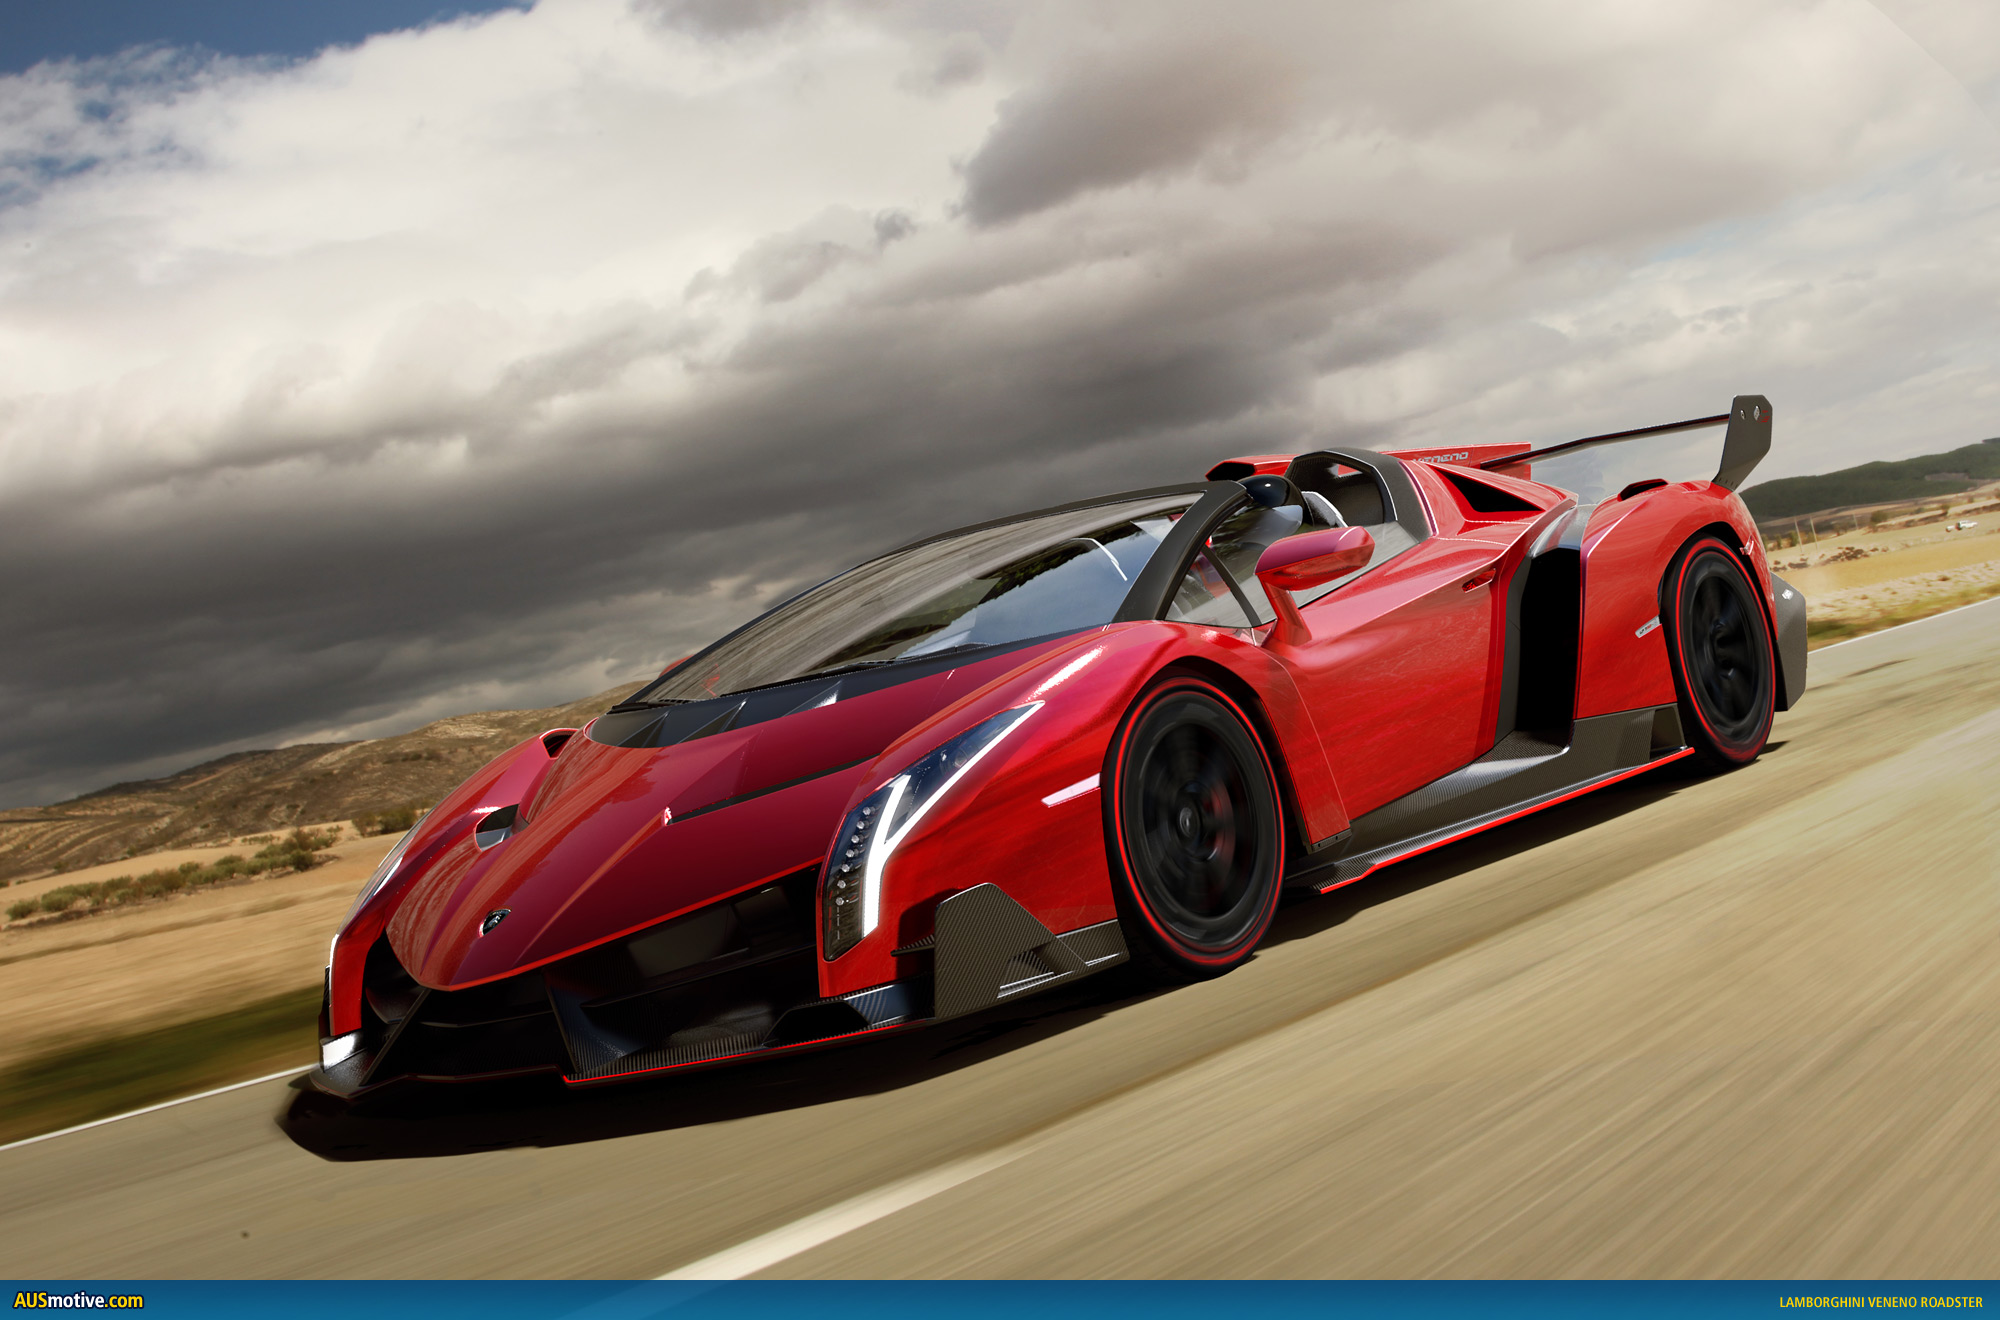 AUSmotive.com u00bb Lamborghini Veneno Roadster revealed